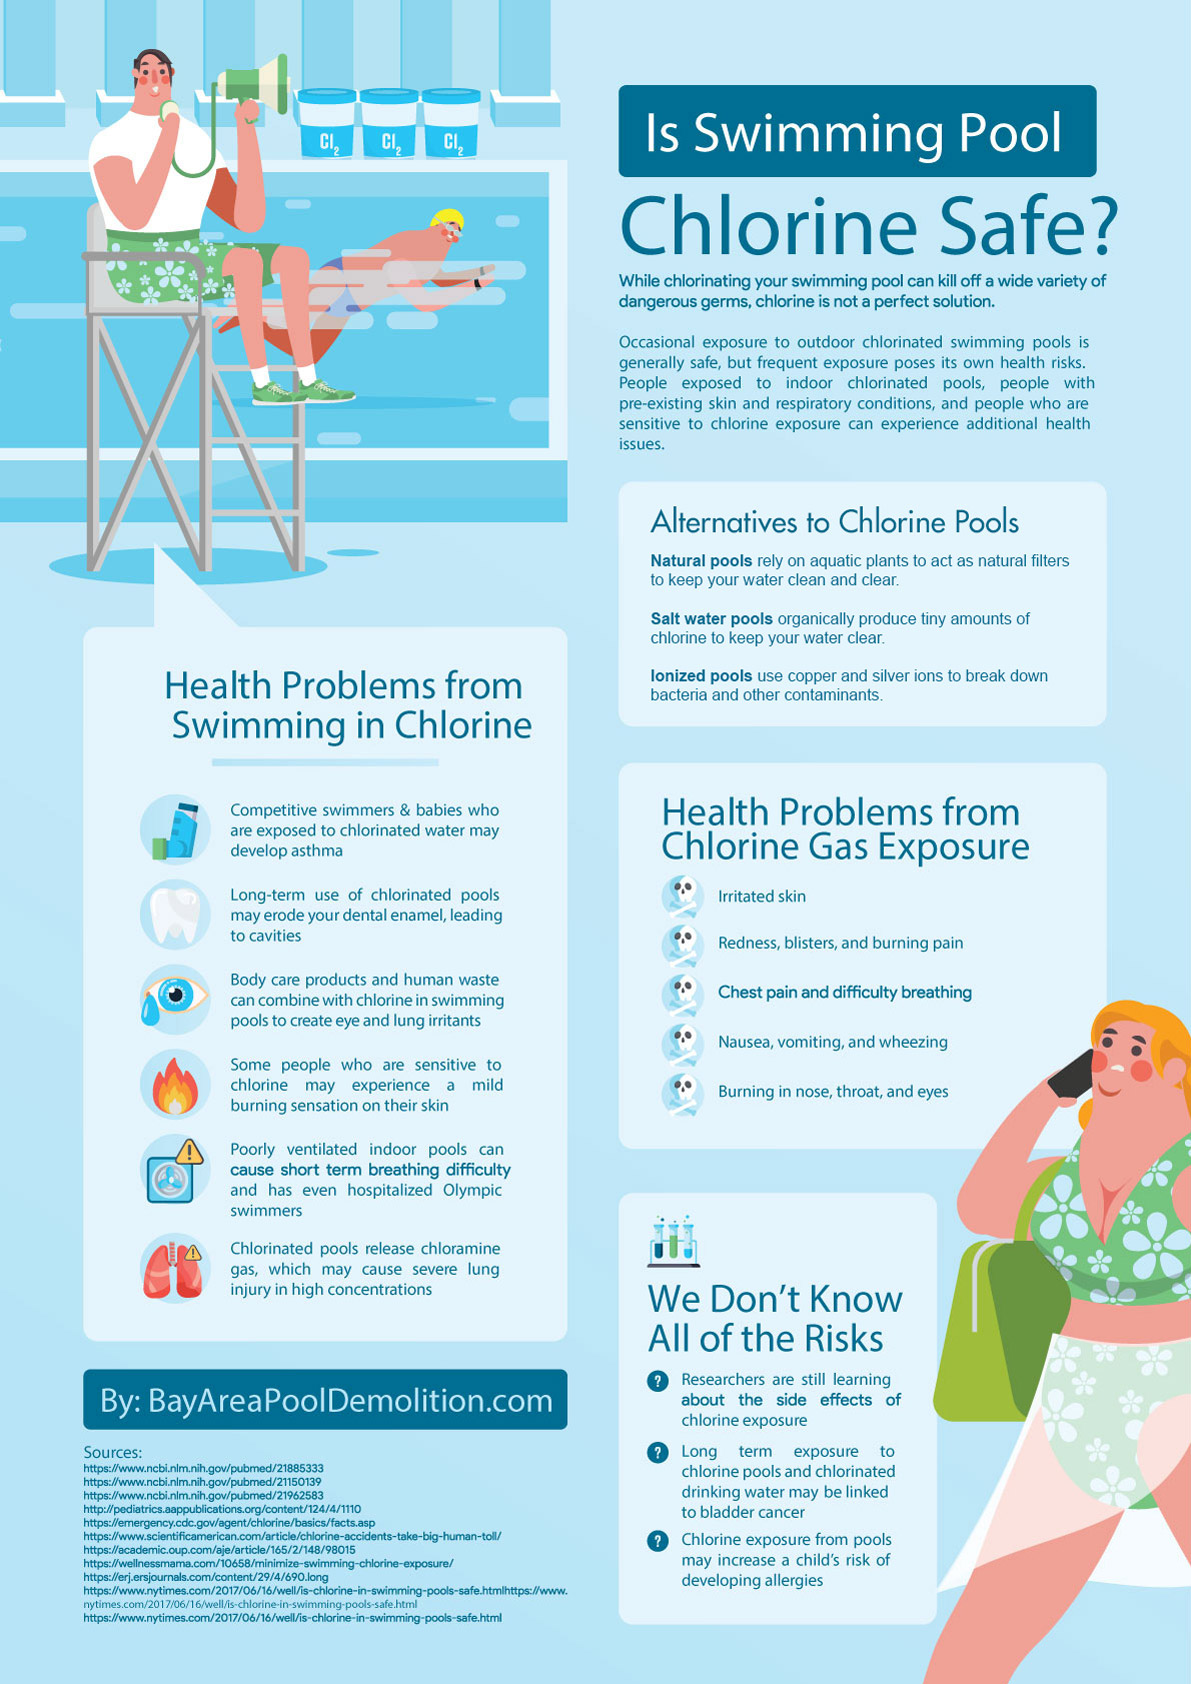 is-swimming-pool-chlorine-safe-infographic-plaza